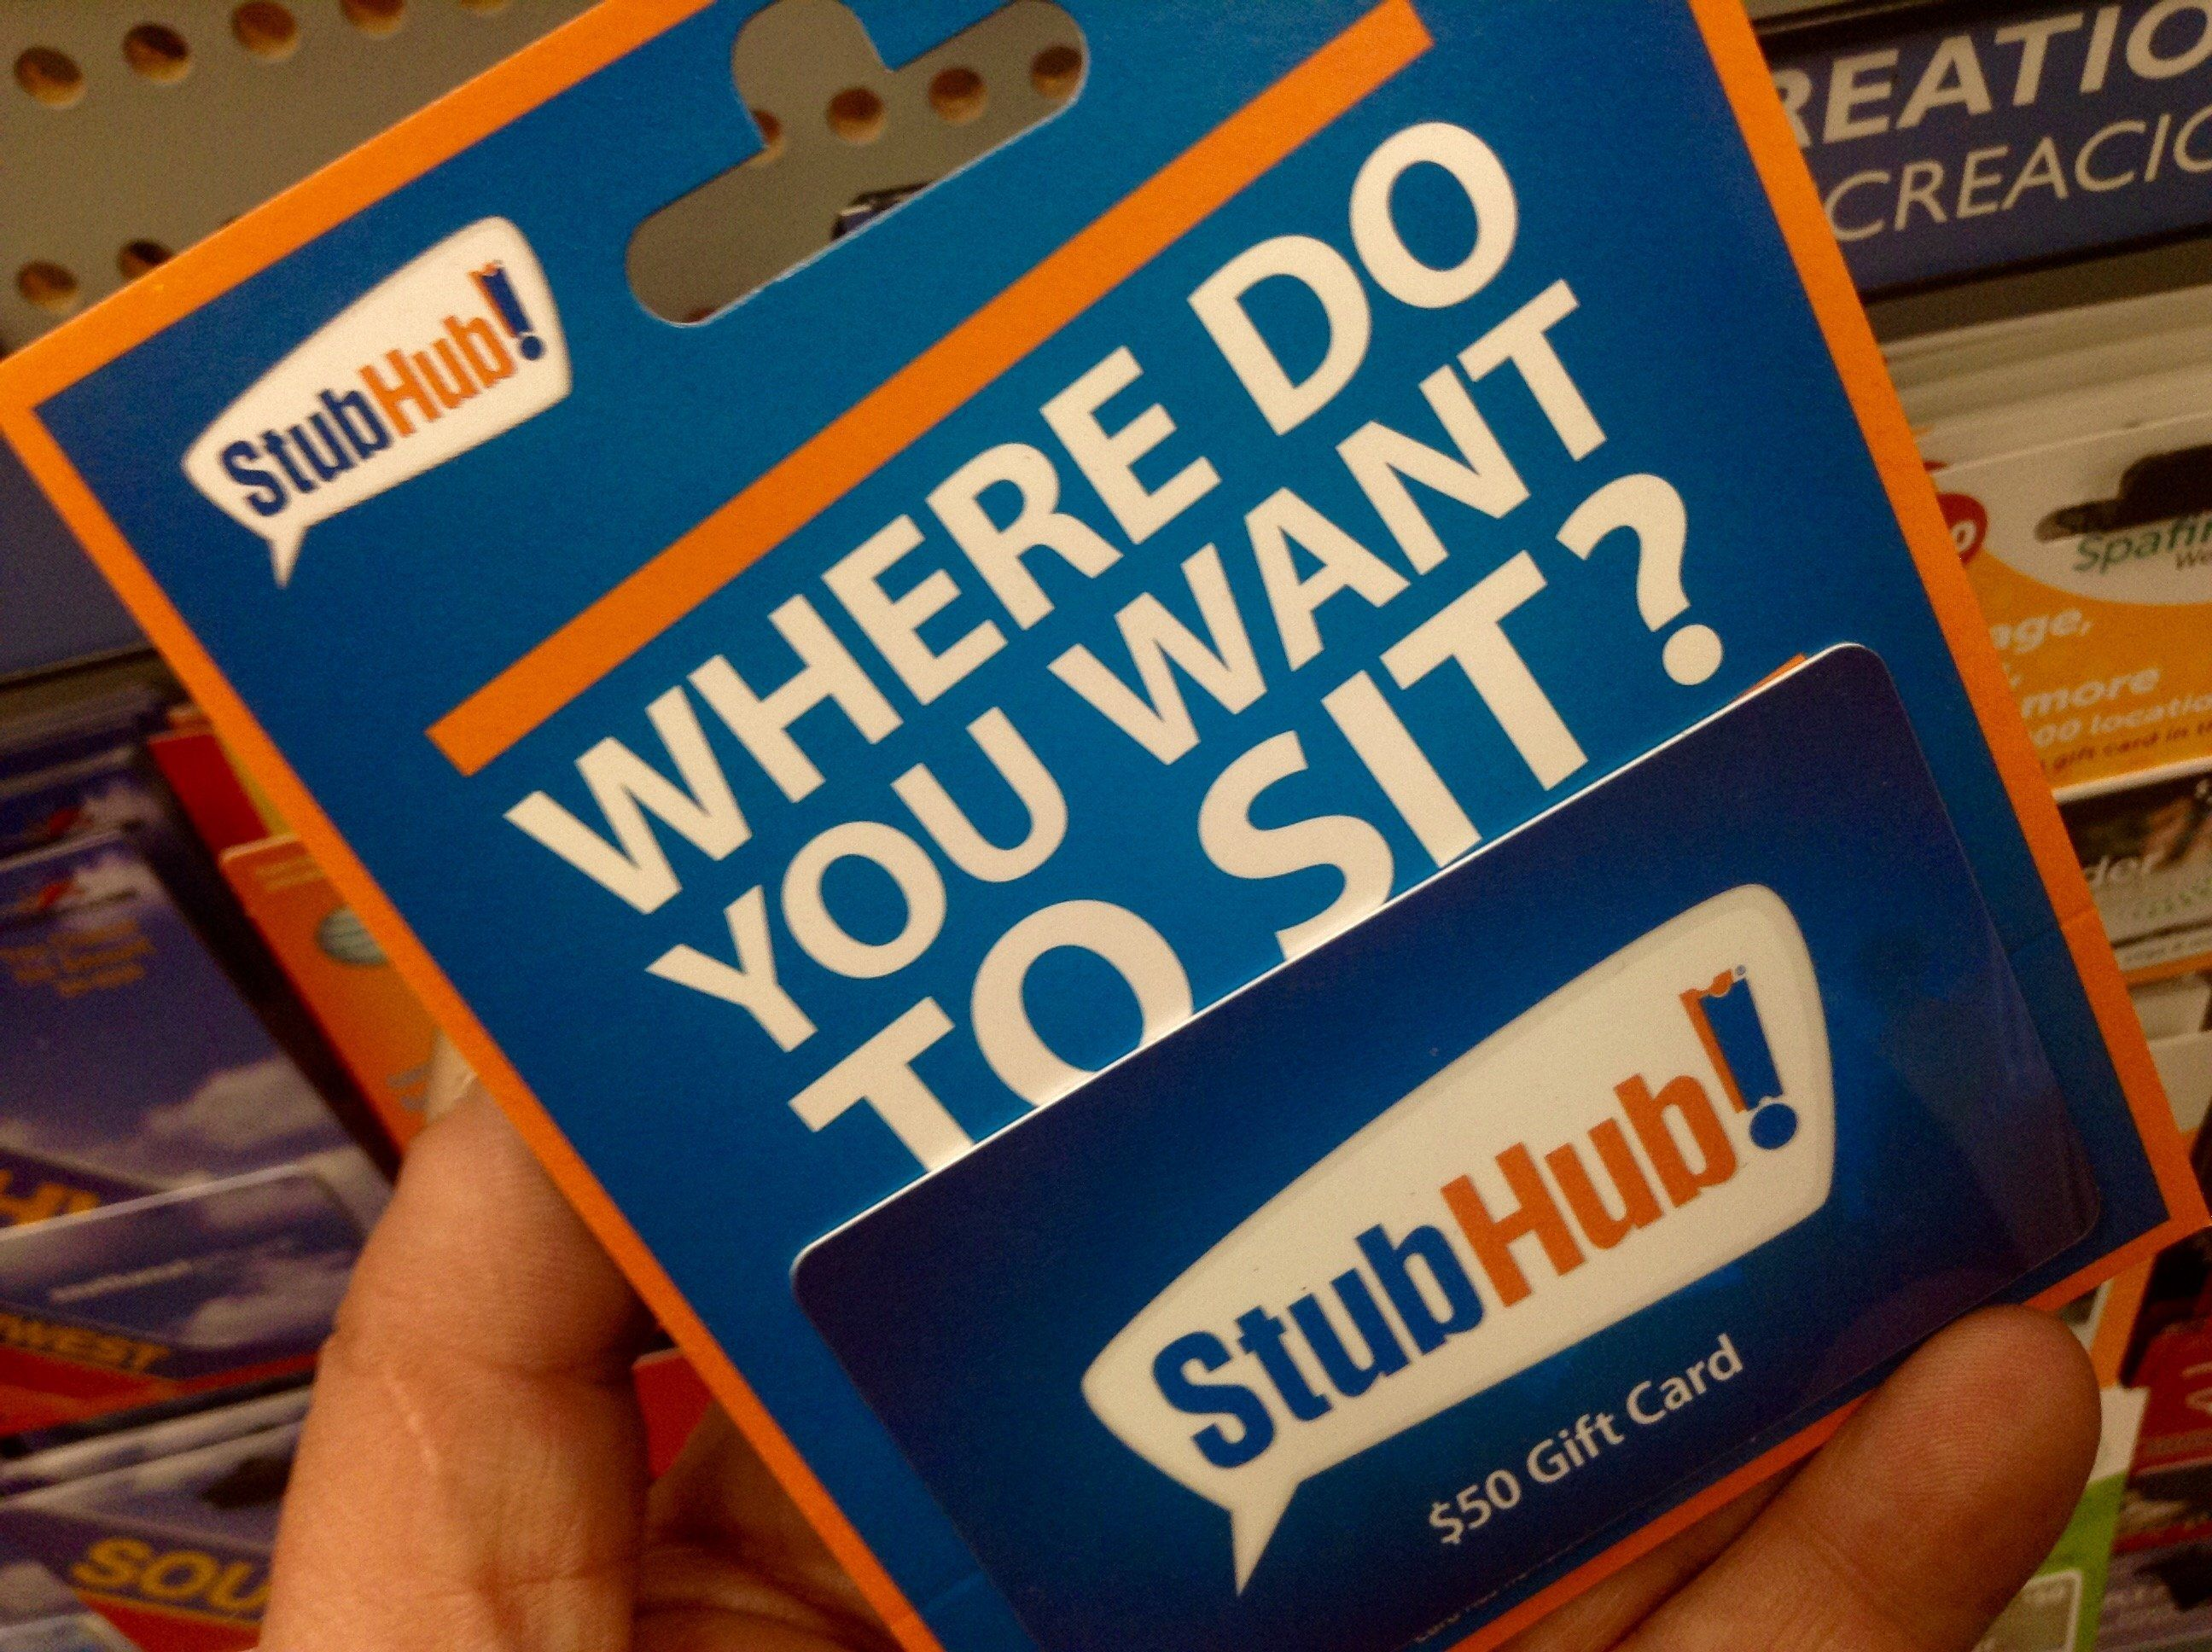 StubHub, Gift Card 1/2014, By Mike Mozart of TheToyChannel and JeepersMedia on YouTube #StubHub